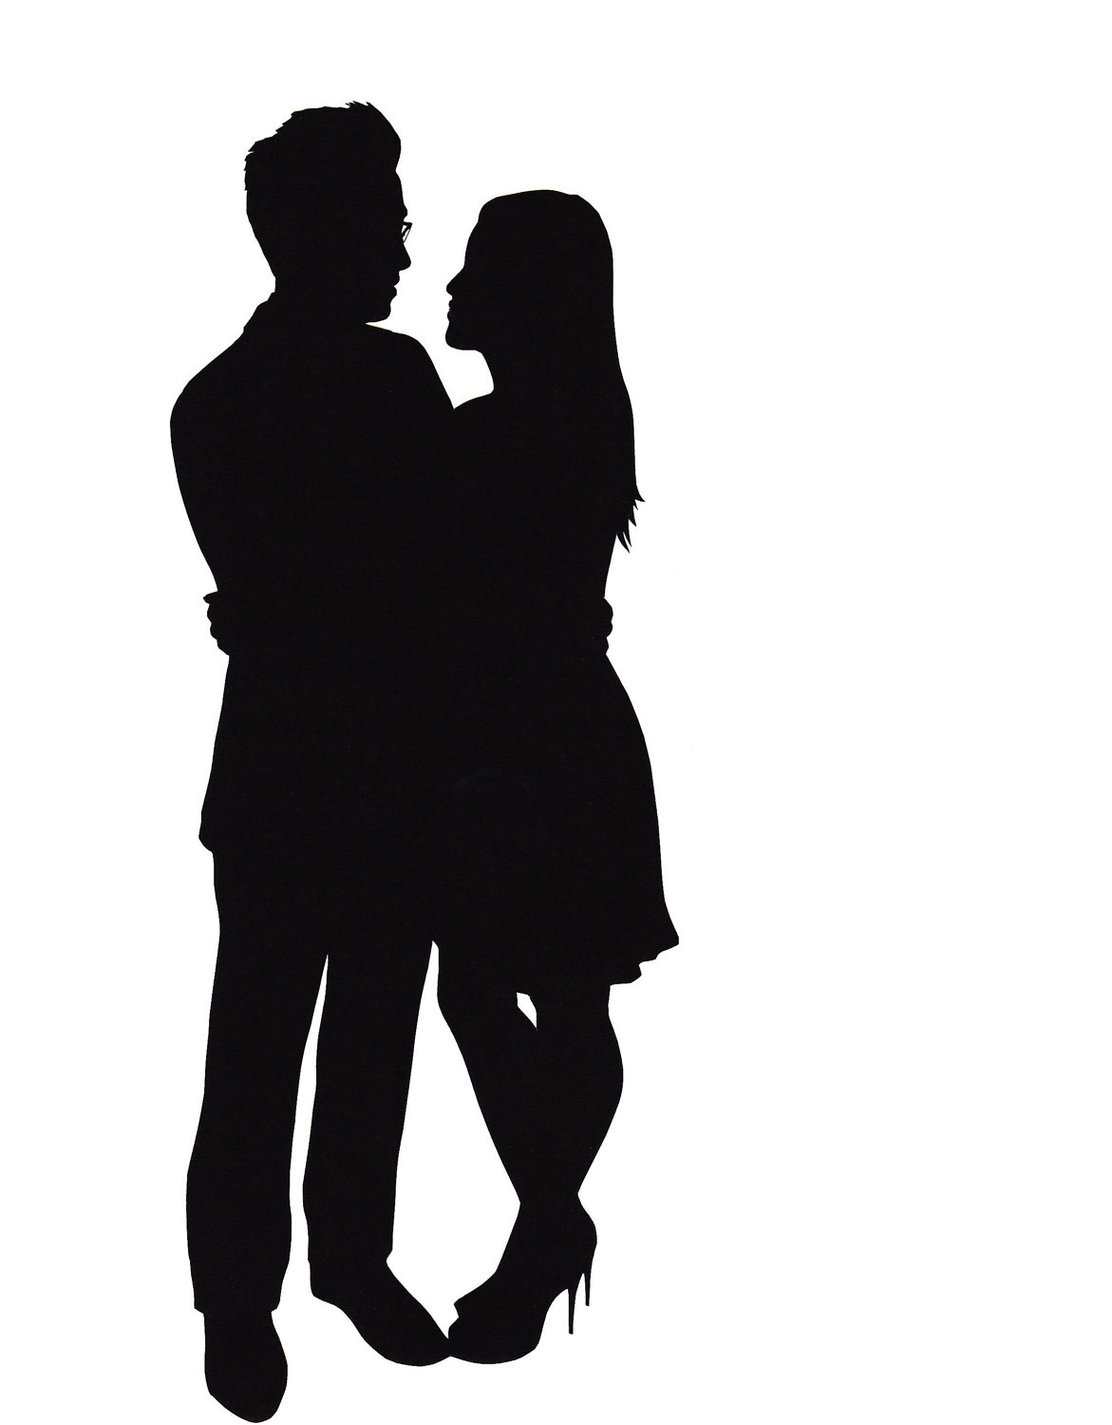 Two people kissing clipart wedding banner transparent library Two people kissing clipart - ClipartFox banner transparent library